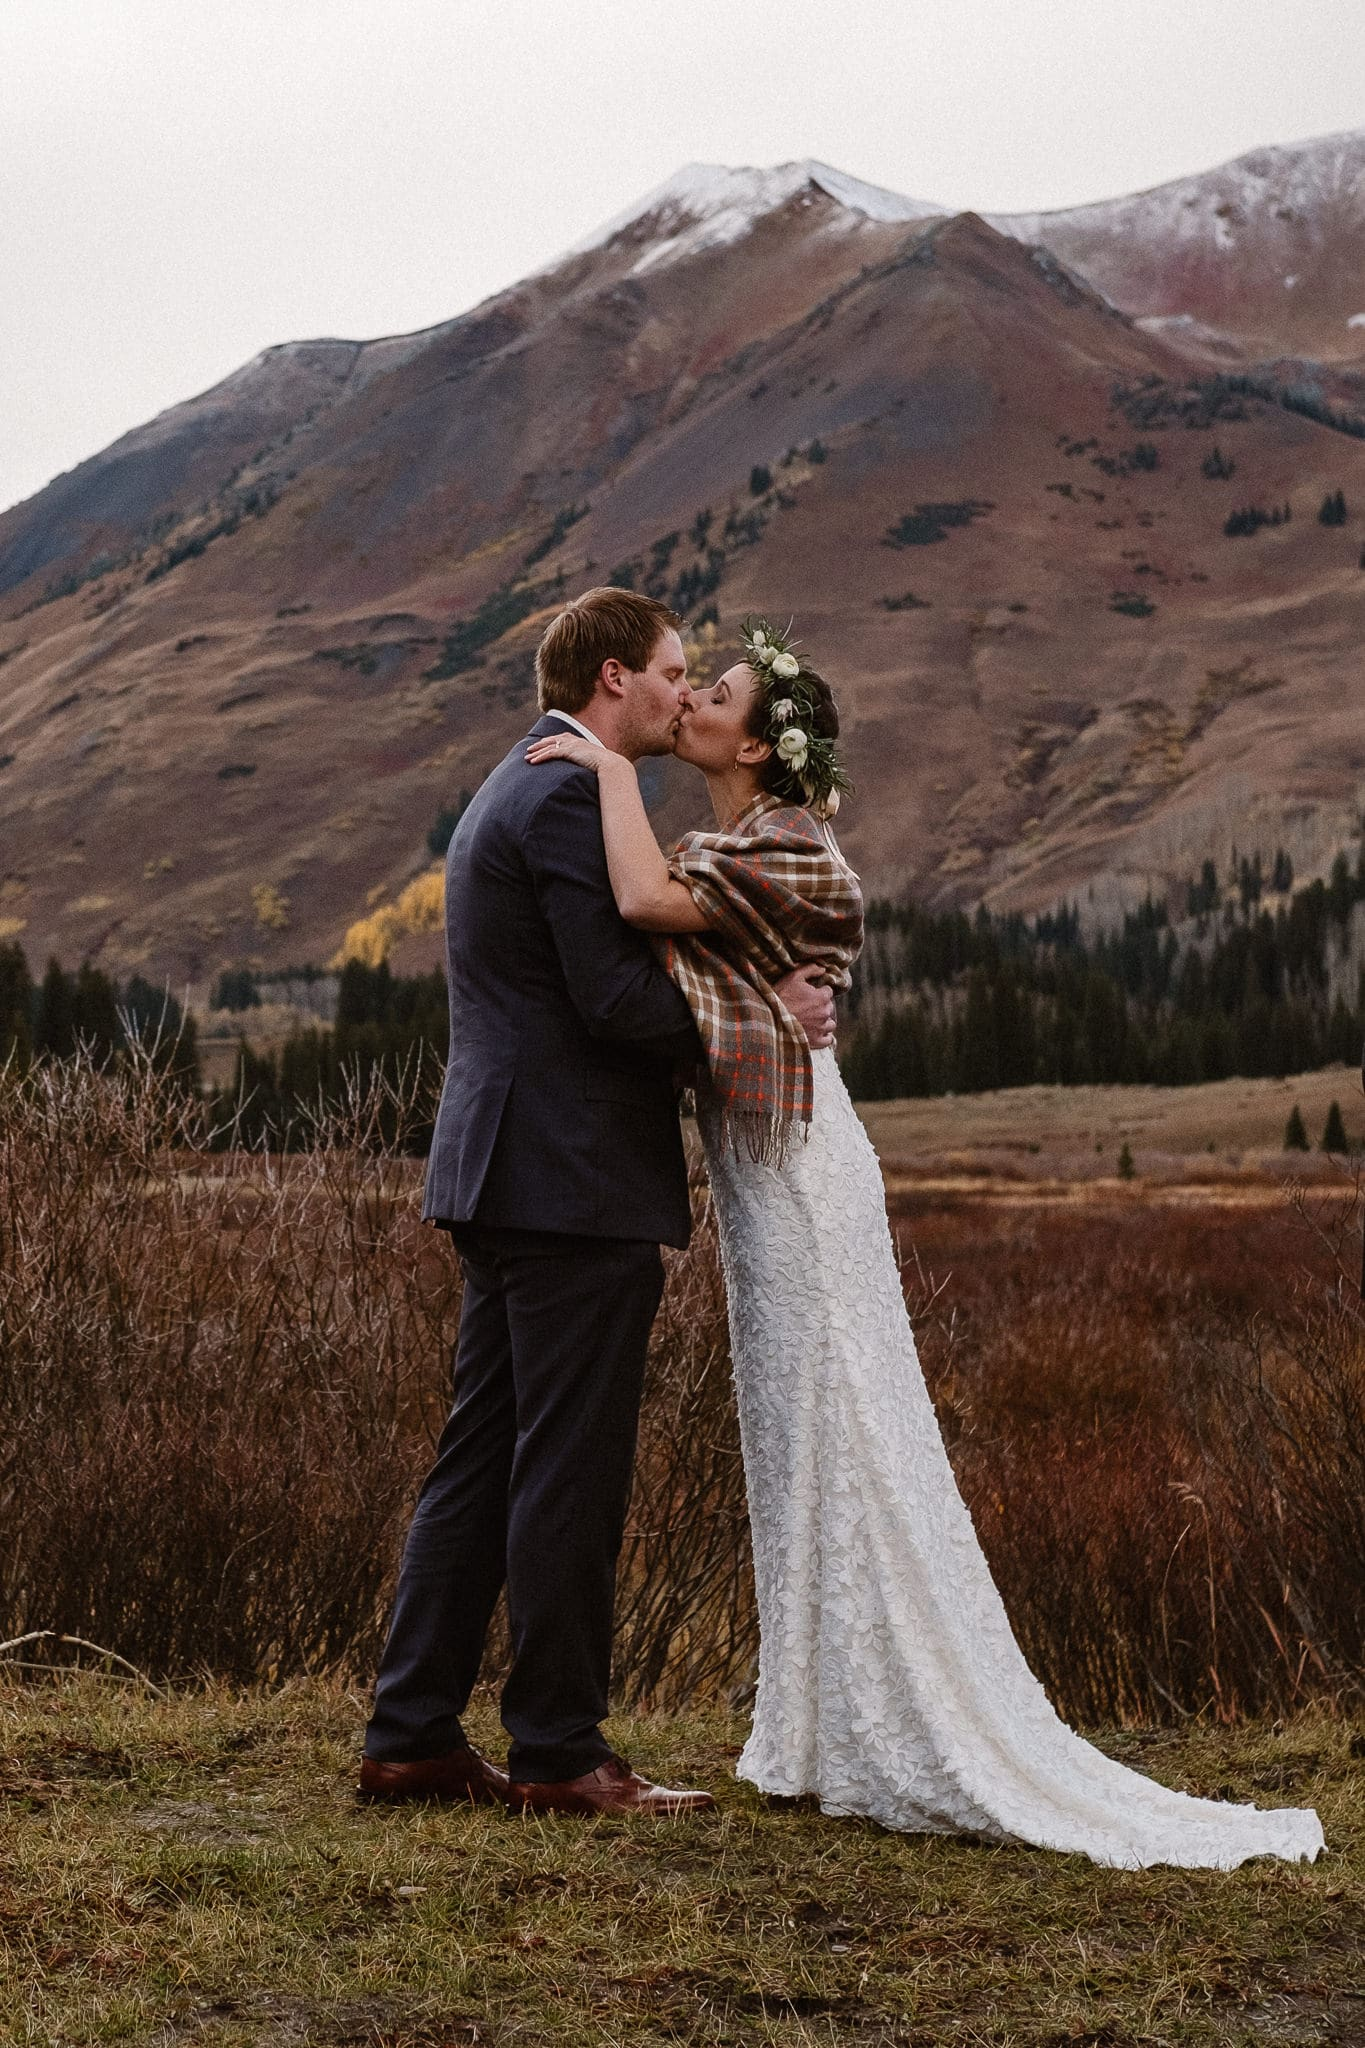 Crested Butte Wedding Photographer, Scarp Ridge Lodge intimate elopement, outdoor elopement in Colorado, Colorado mountain adventure wedding, first kiss